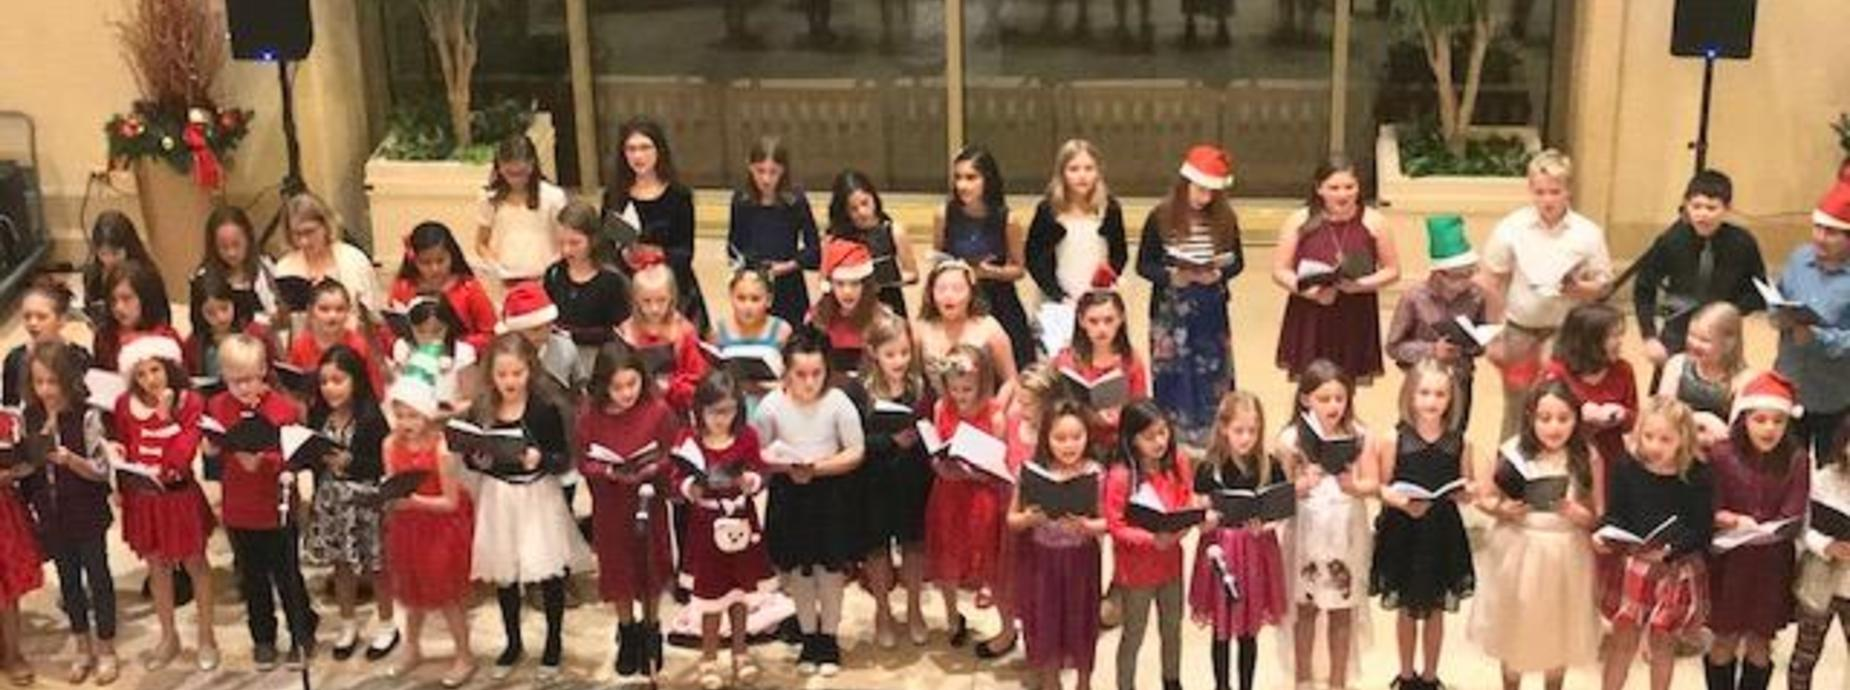 Choir sings at Marriott